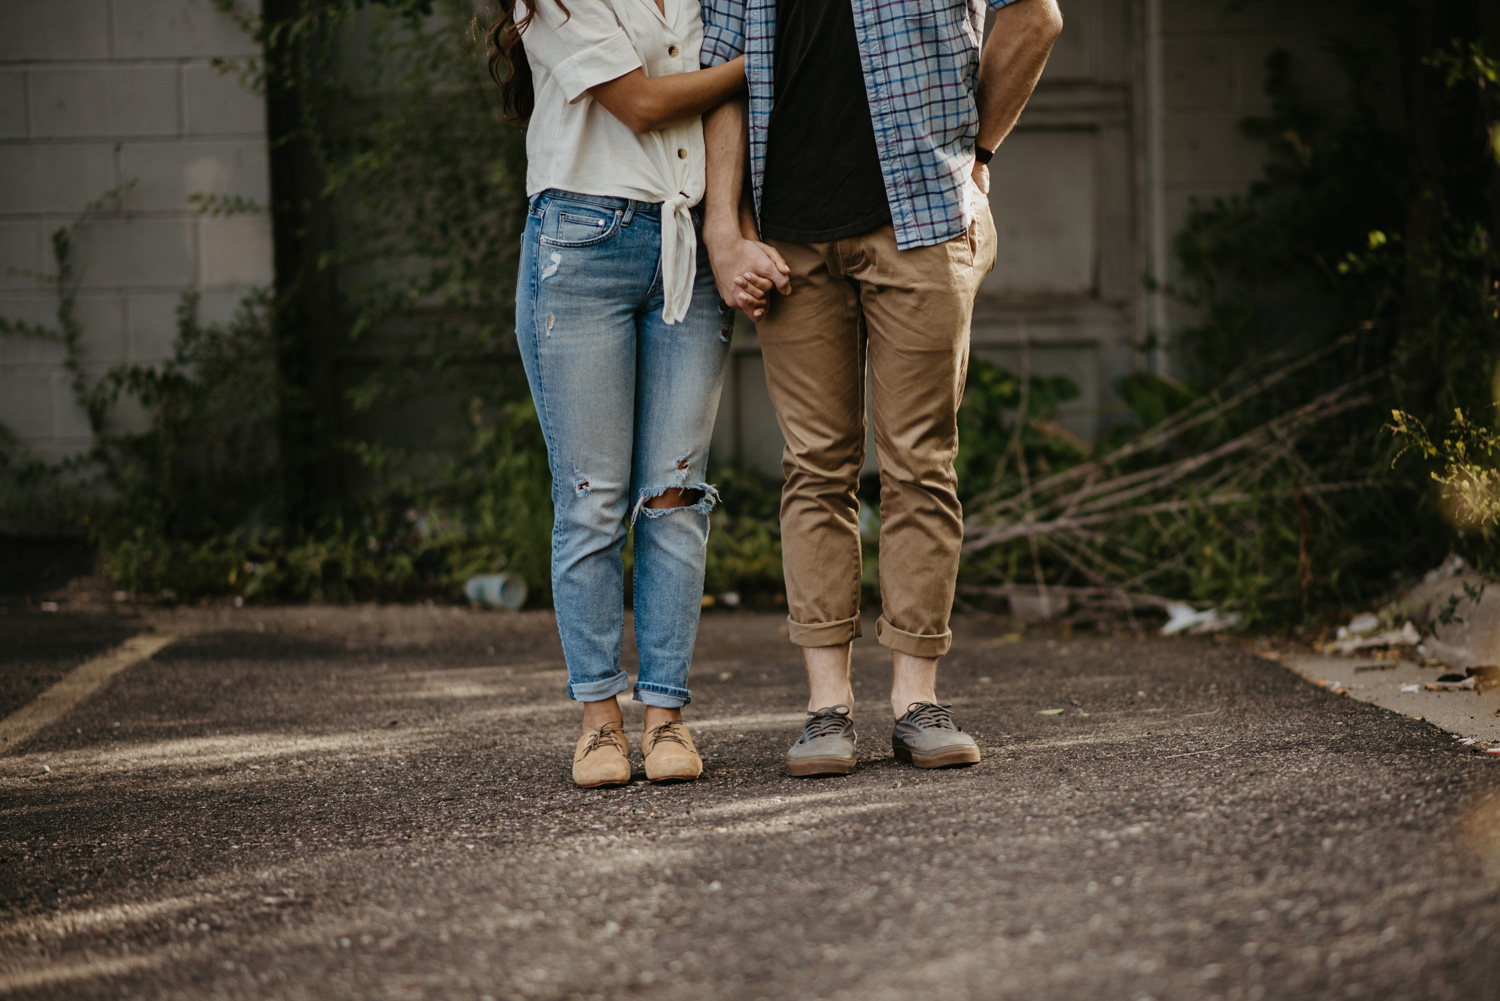 Torso and legs on man and woman in engagement photos standing side by side